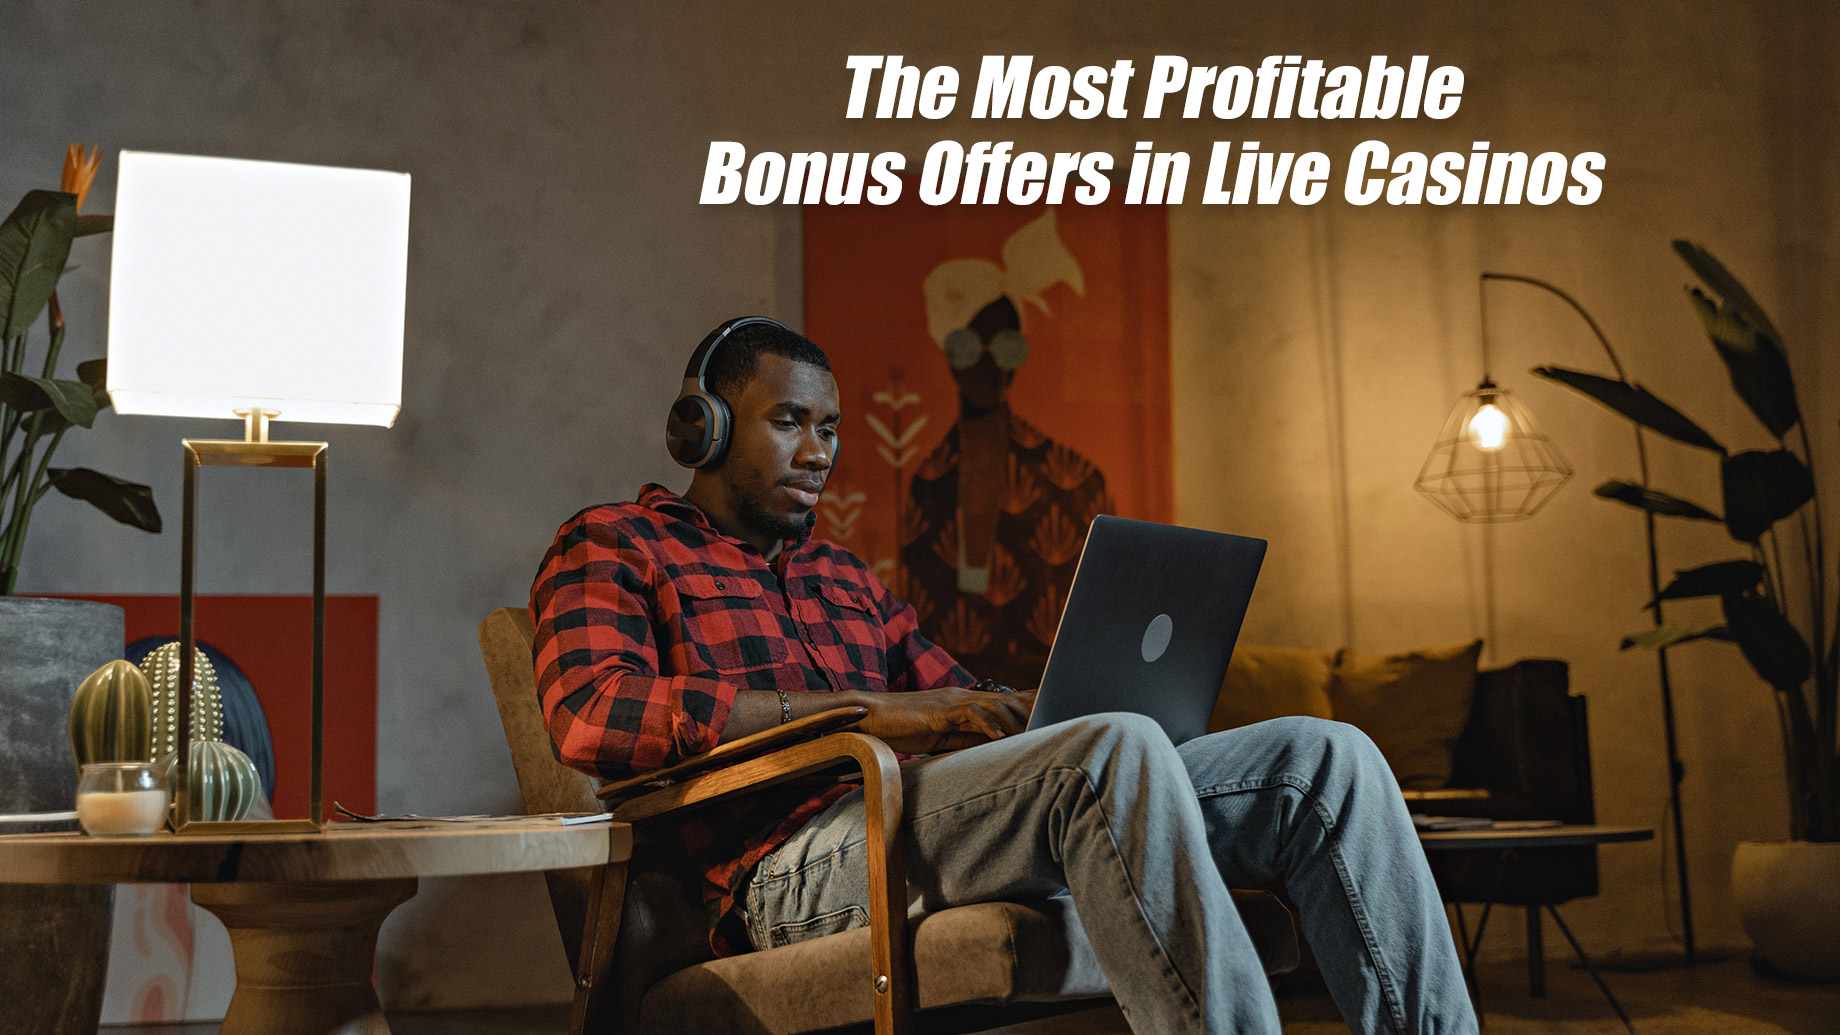 The Most Profitable Bonus Offers in Live Casinos